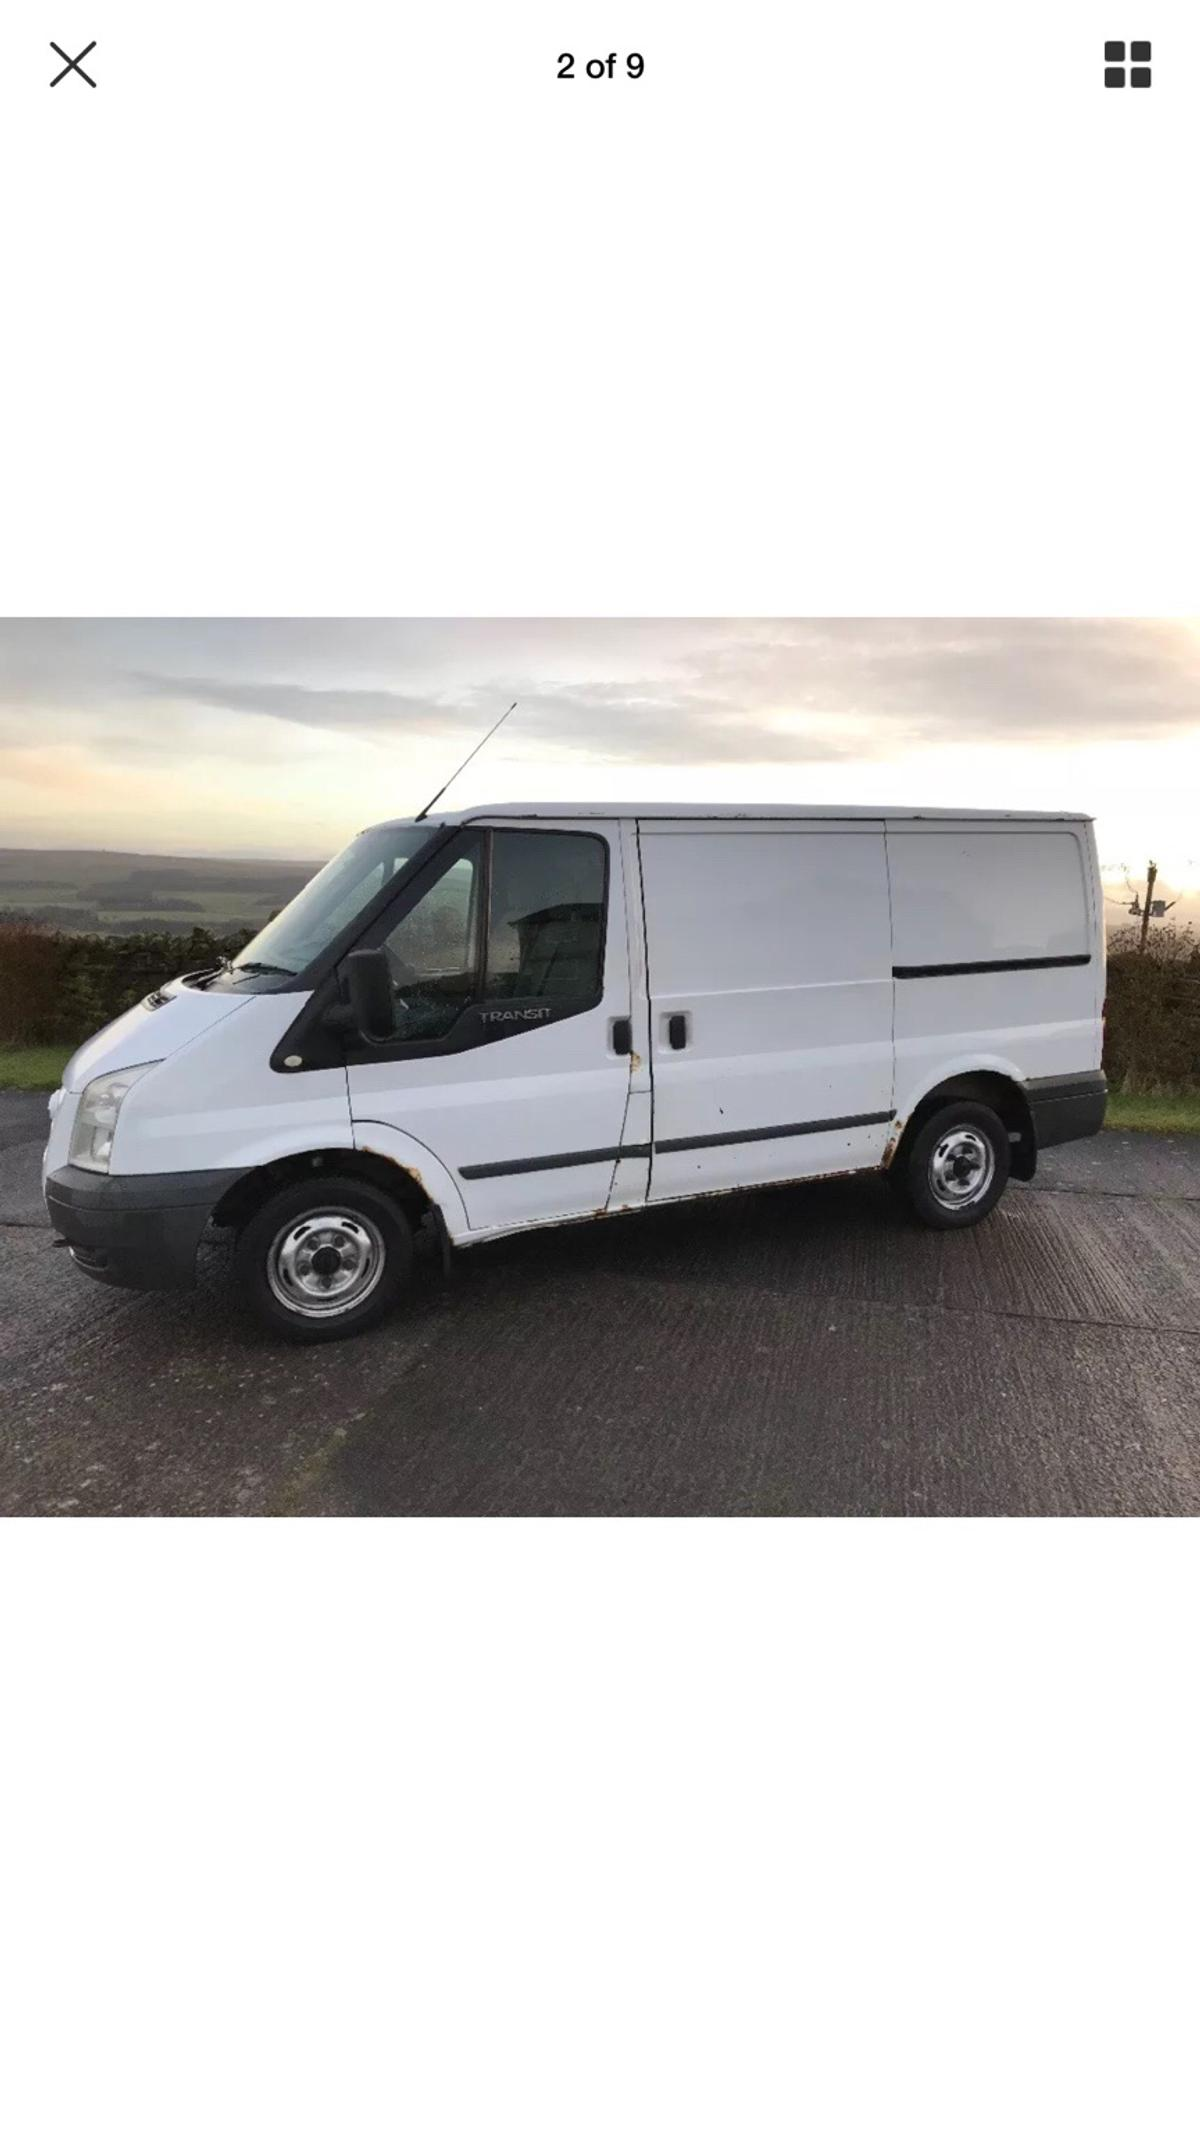 Ford transit spares repair in DN1 Doncaster for £650 00 for